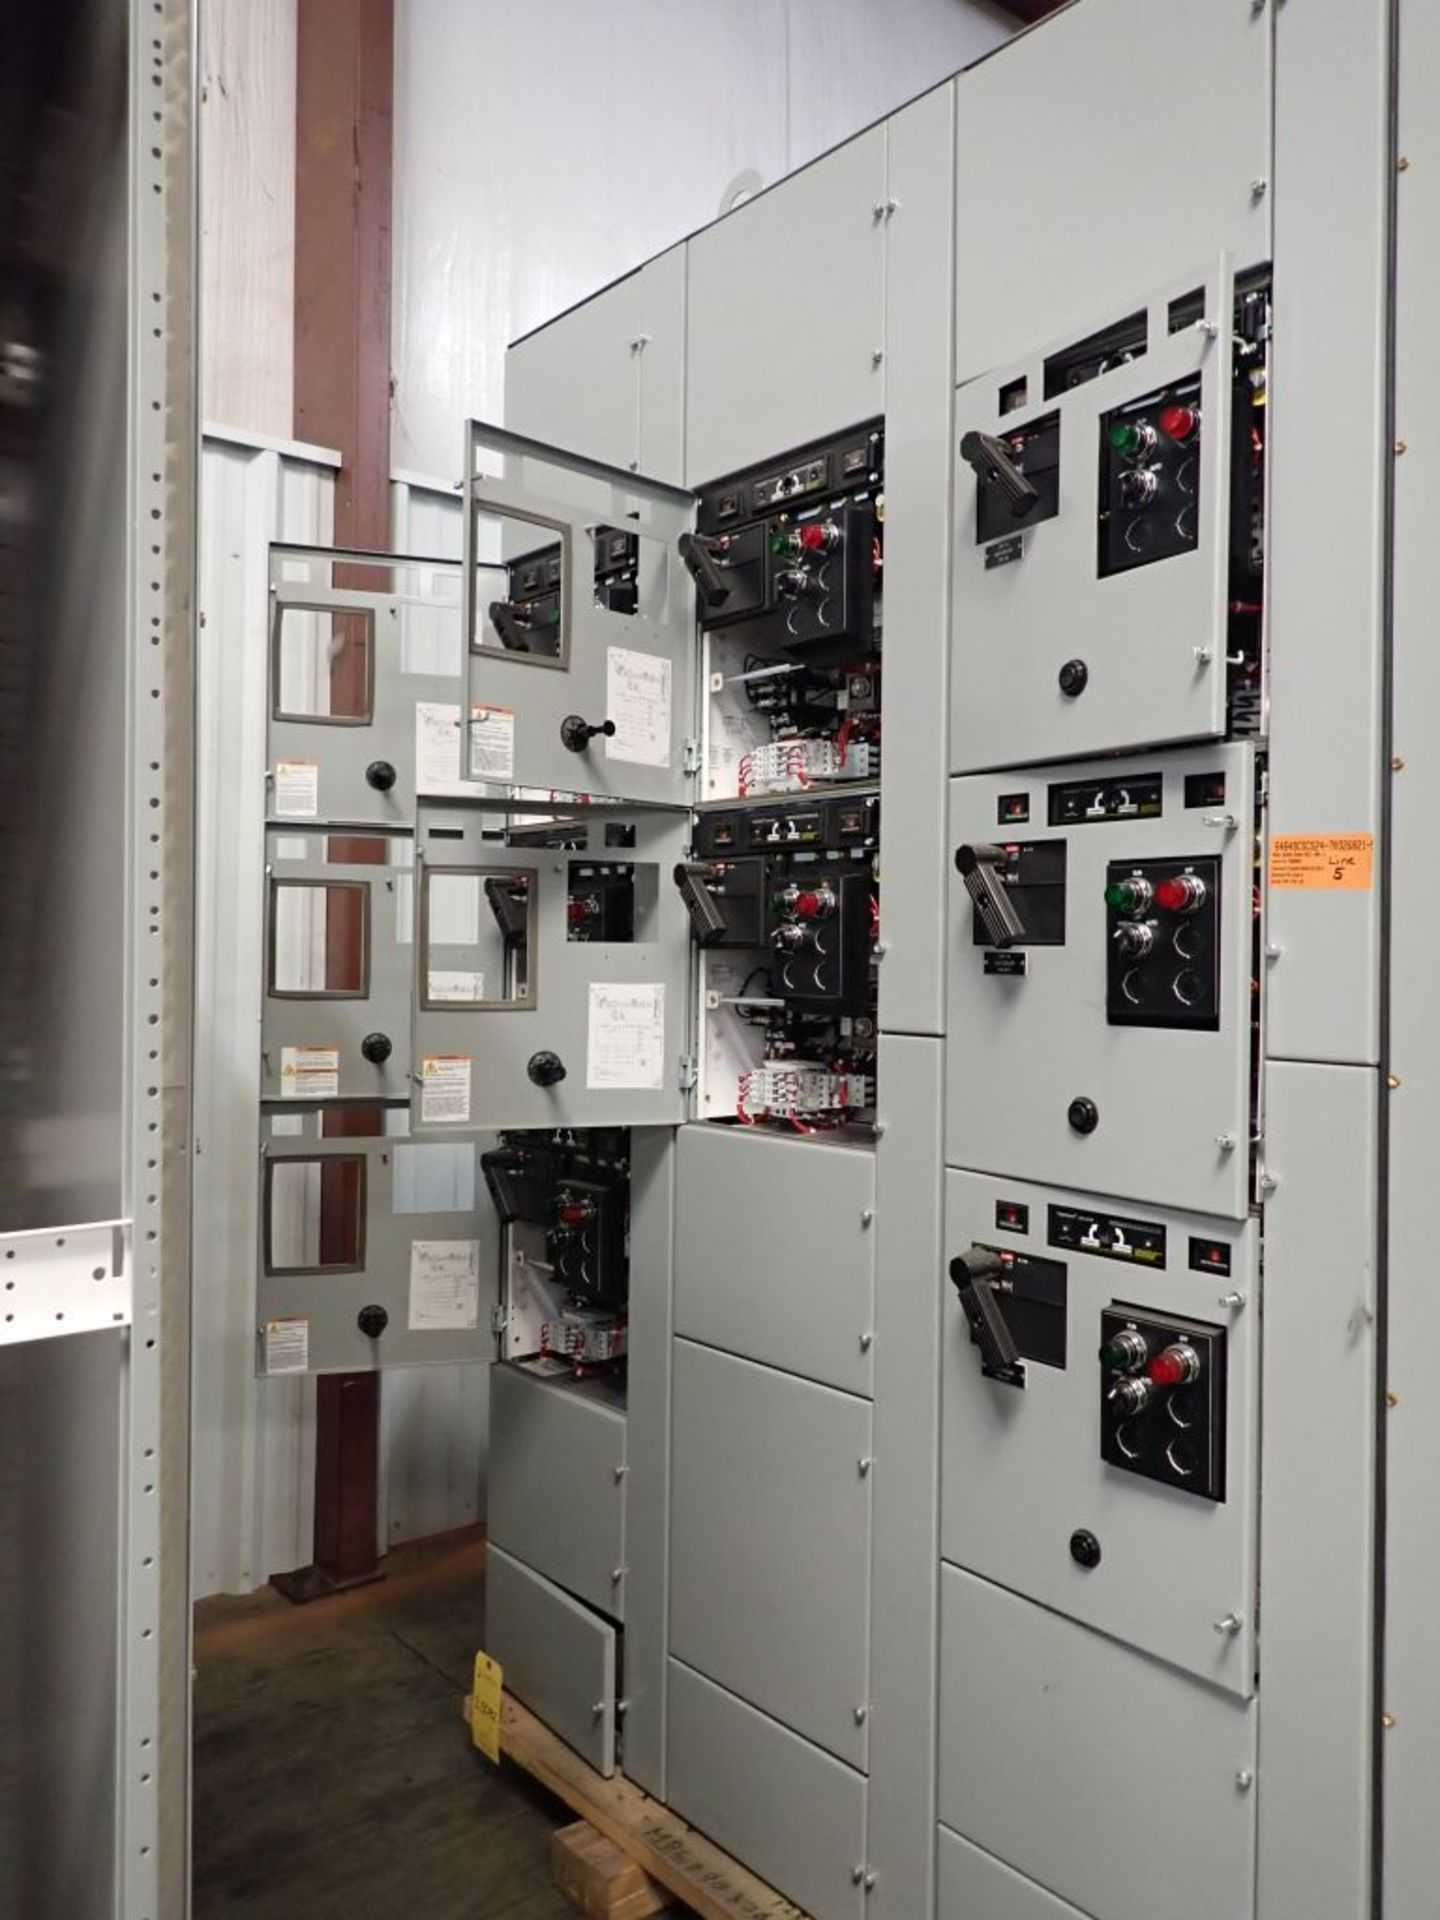 Eaton Freedom 2100 Series Motor Control Center | (11) F206-30A-10HP; (5) F206-15A-10HP; (1) SVX900- - Image 6 of 102